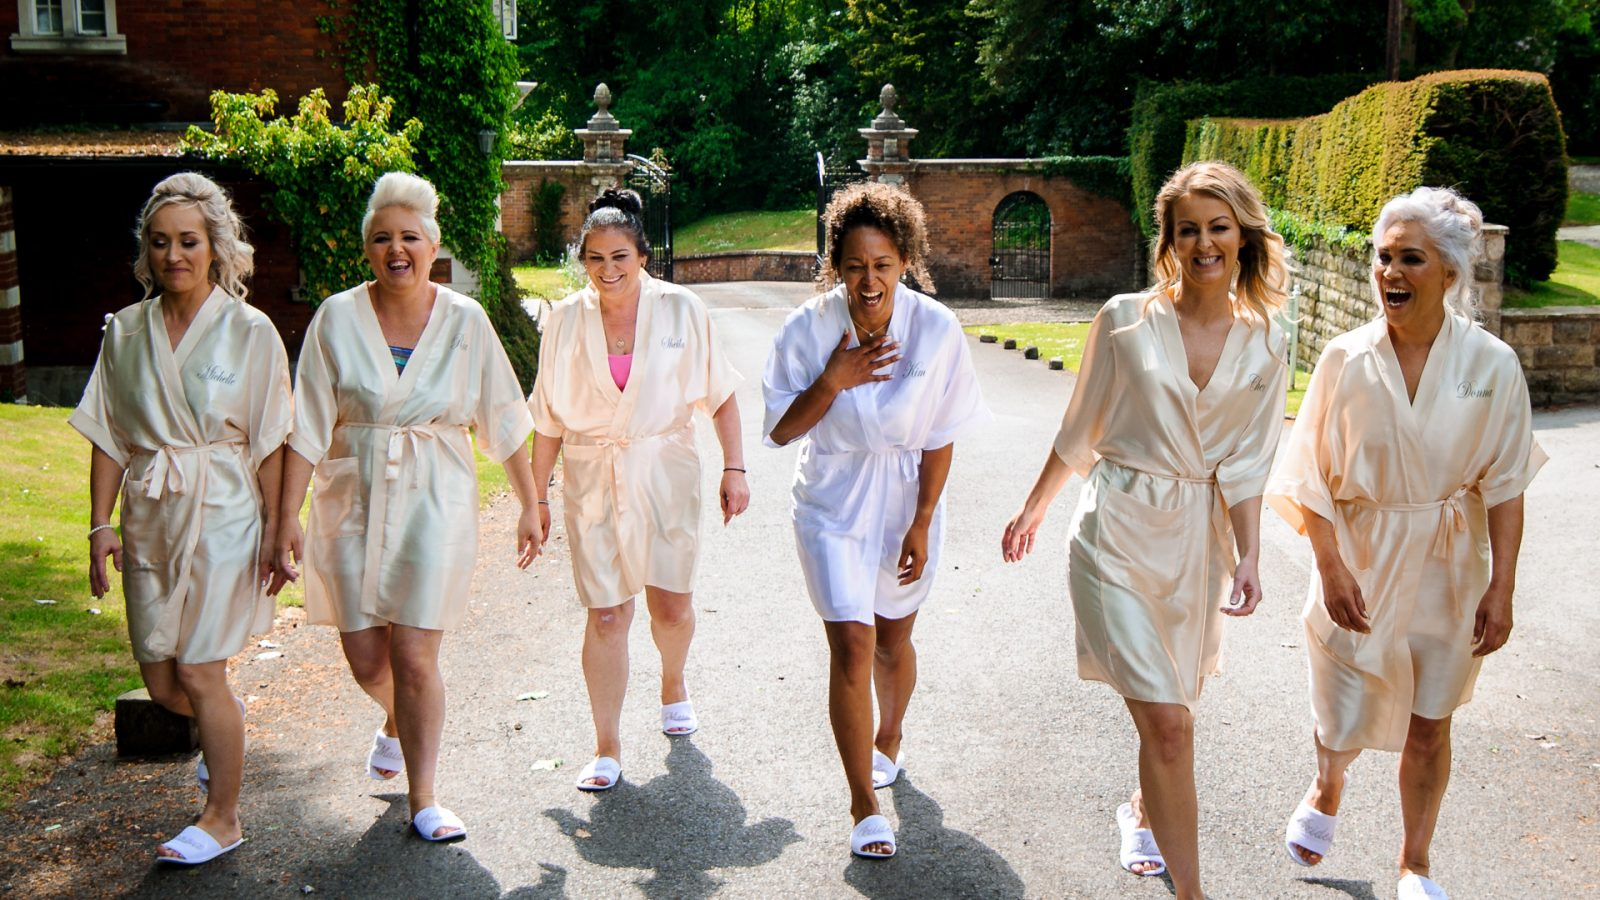 best-wedding-photos-2017-kimberley-and-matthew-withbridesmaids-getting-ready